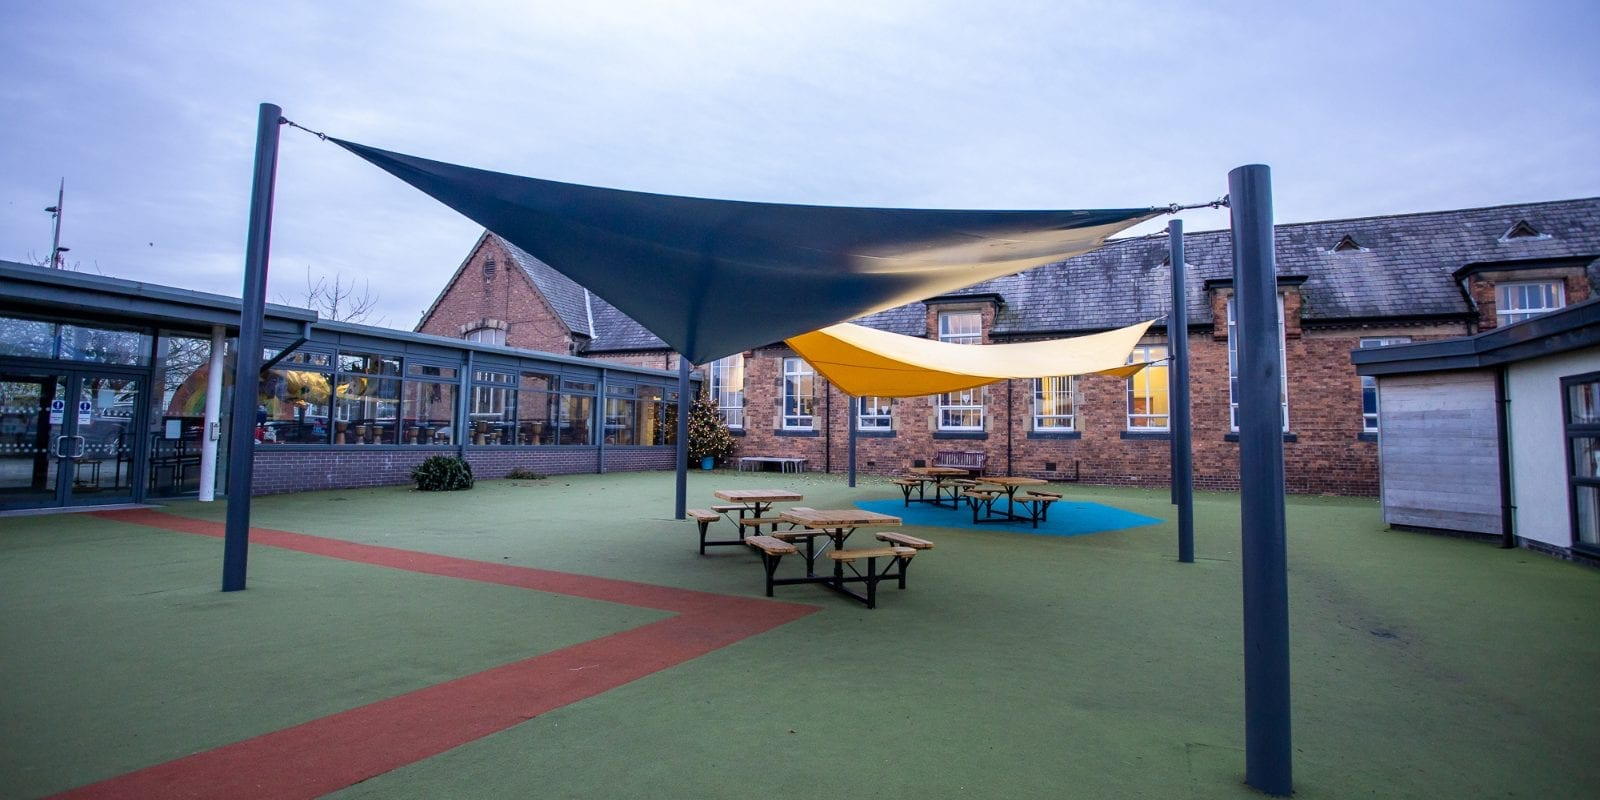 Fabric canopy we designed for Winsford Primary School